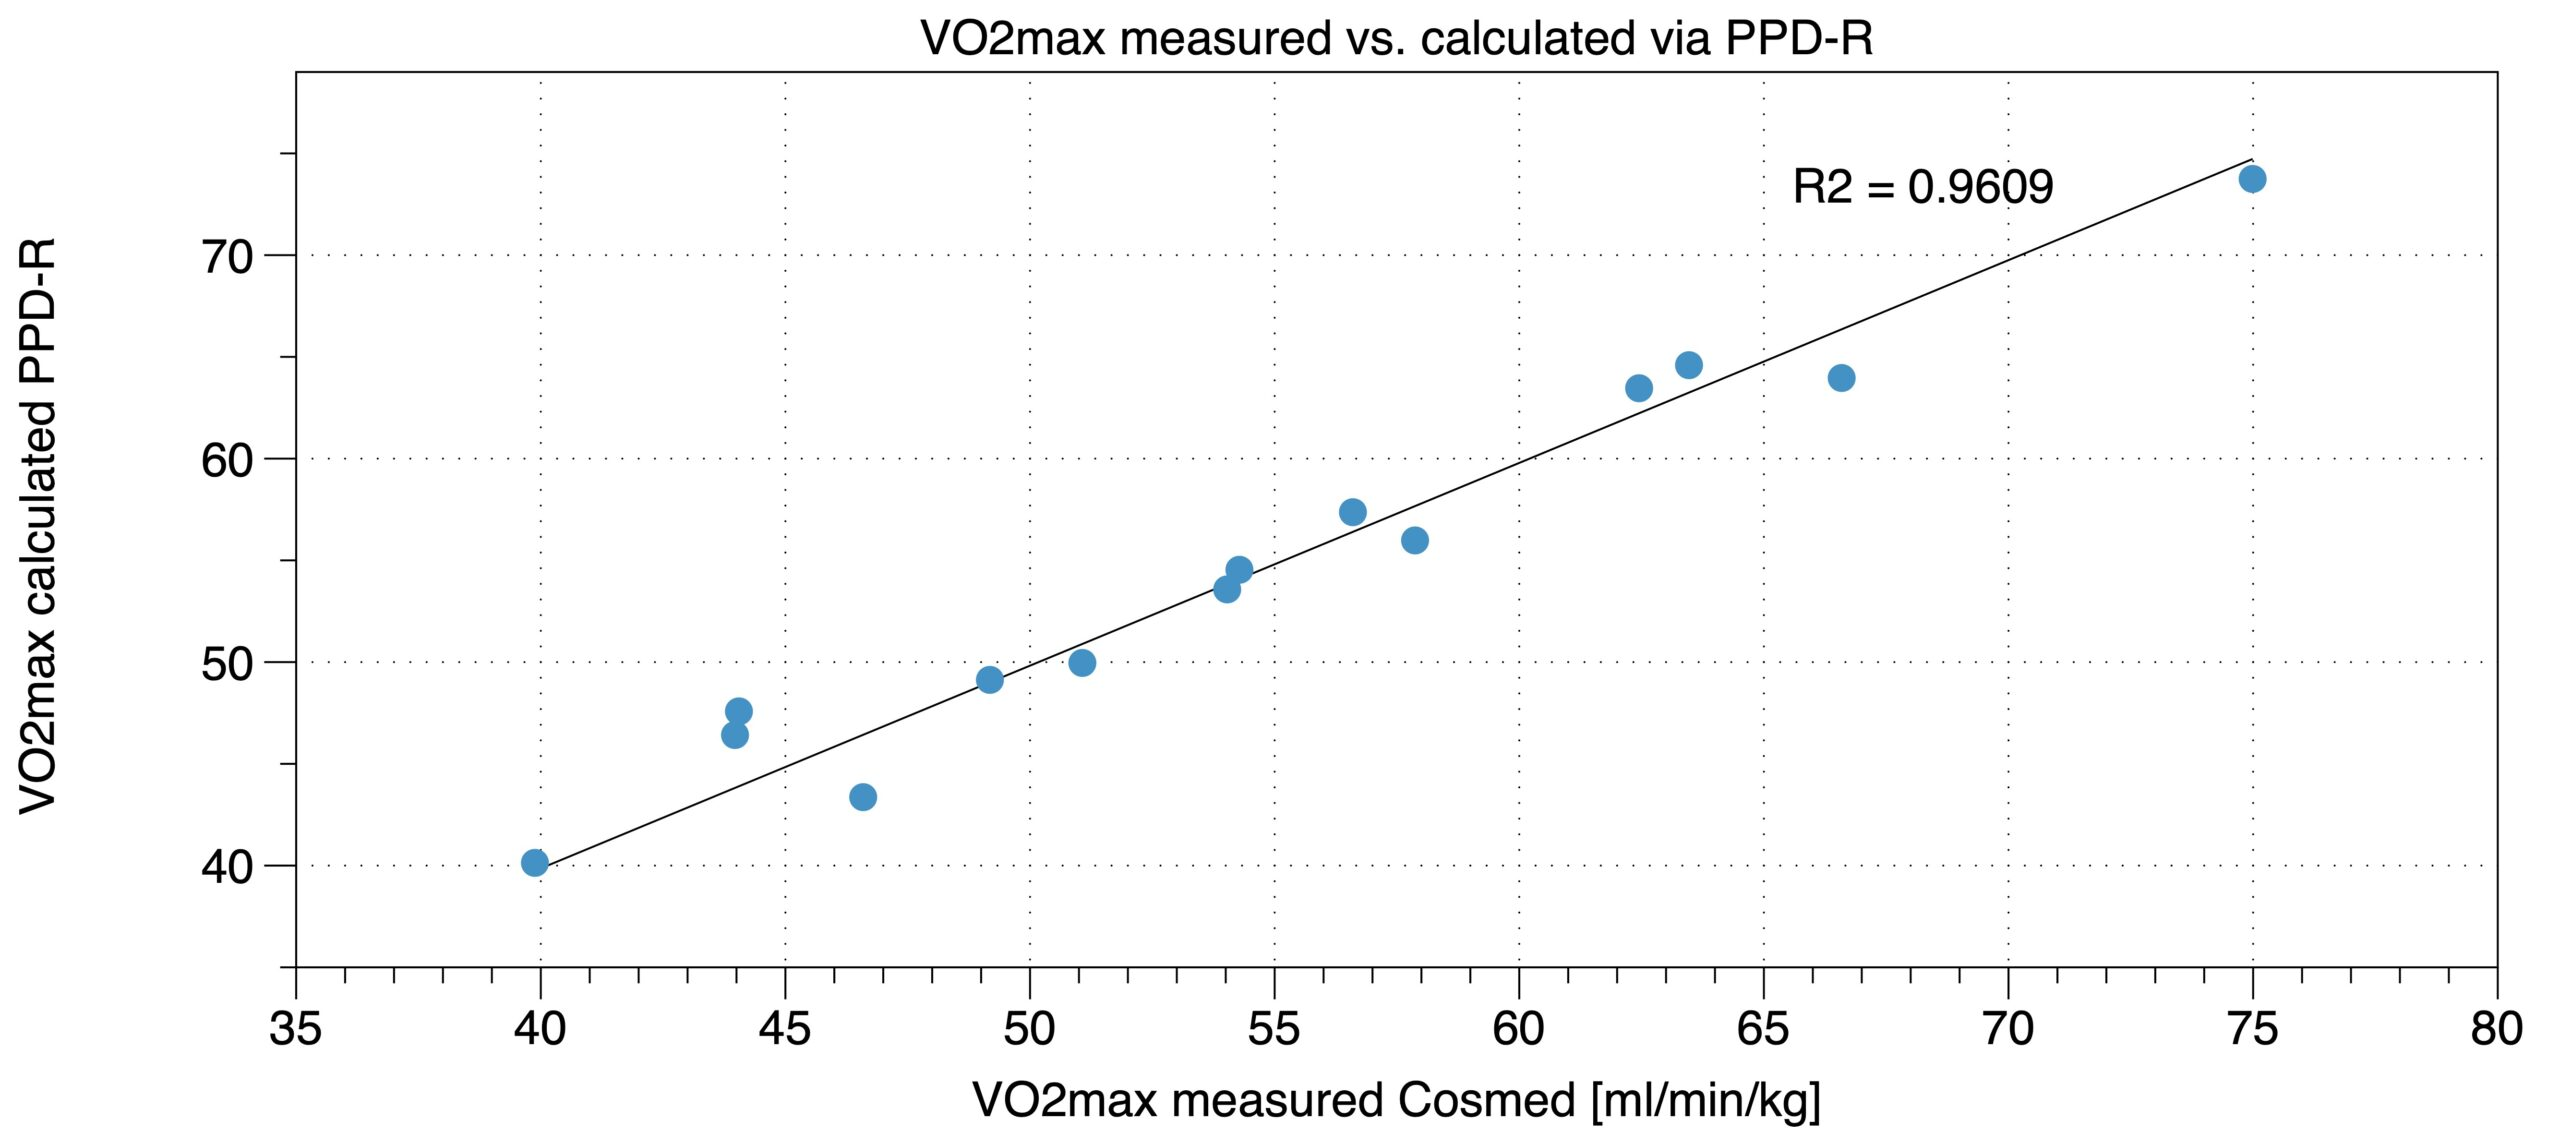 """Validity of the VO2max in PPD-R. Comparing PPD-R results (y-axis) with """"golden standard"""" Cosmed metabolic analyzer results (x-axis)."""